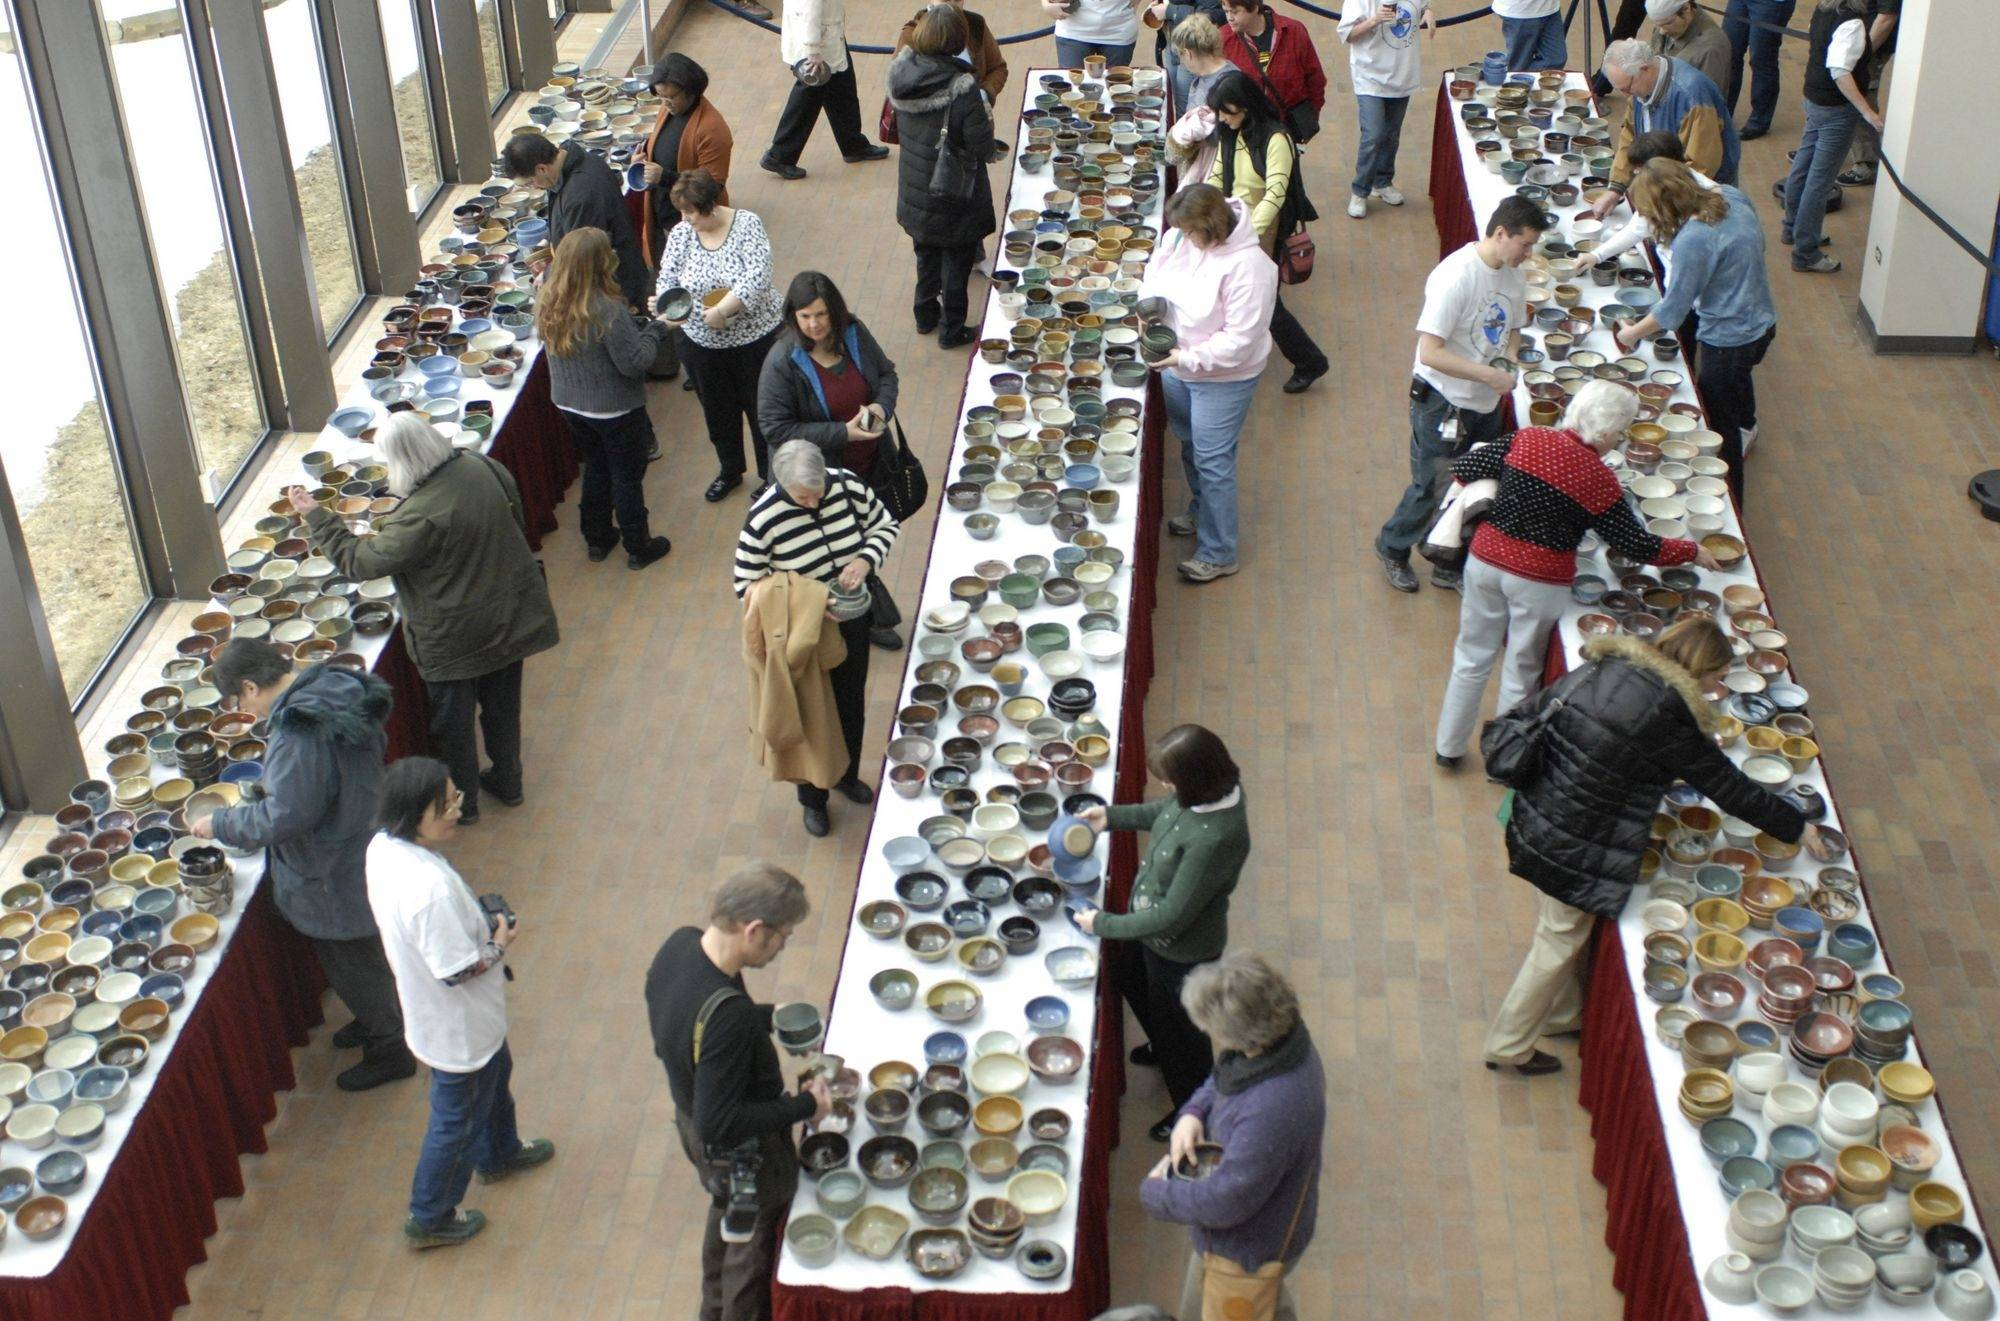 More than 1,000 bowls made by College of Lake County ceramics students were on sale at the second annual Empty Bowls event at the Grayslake campus Tuesday.